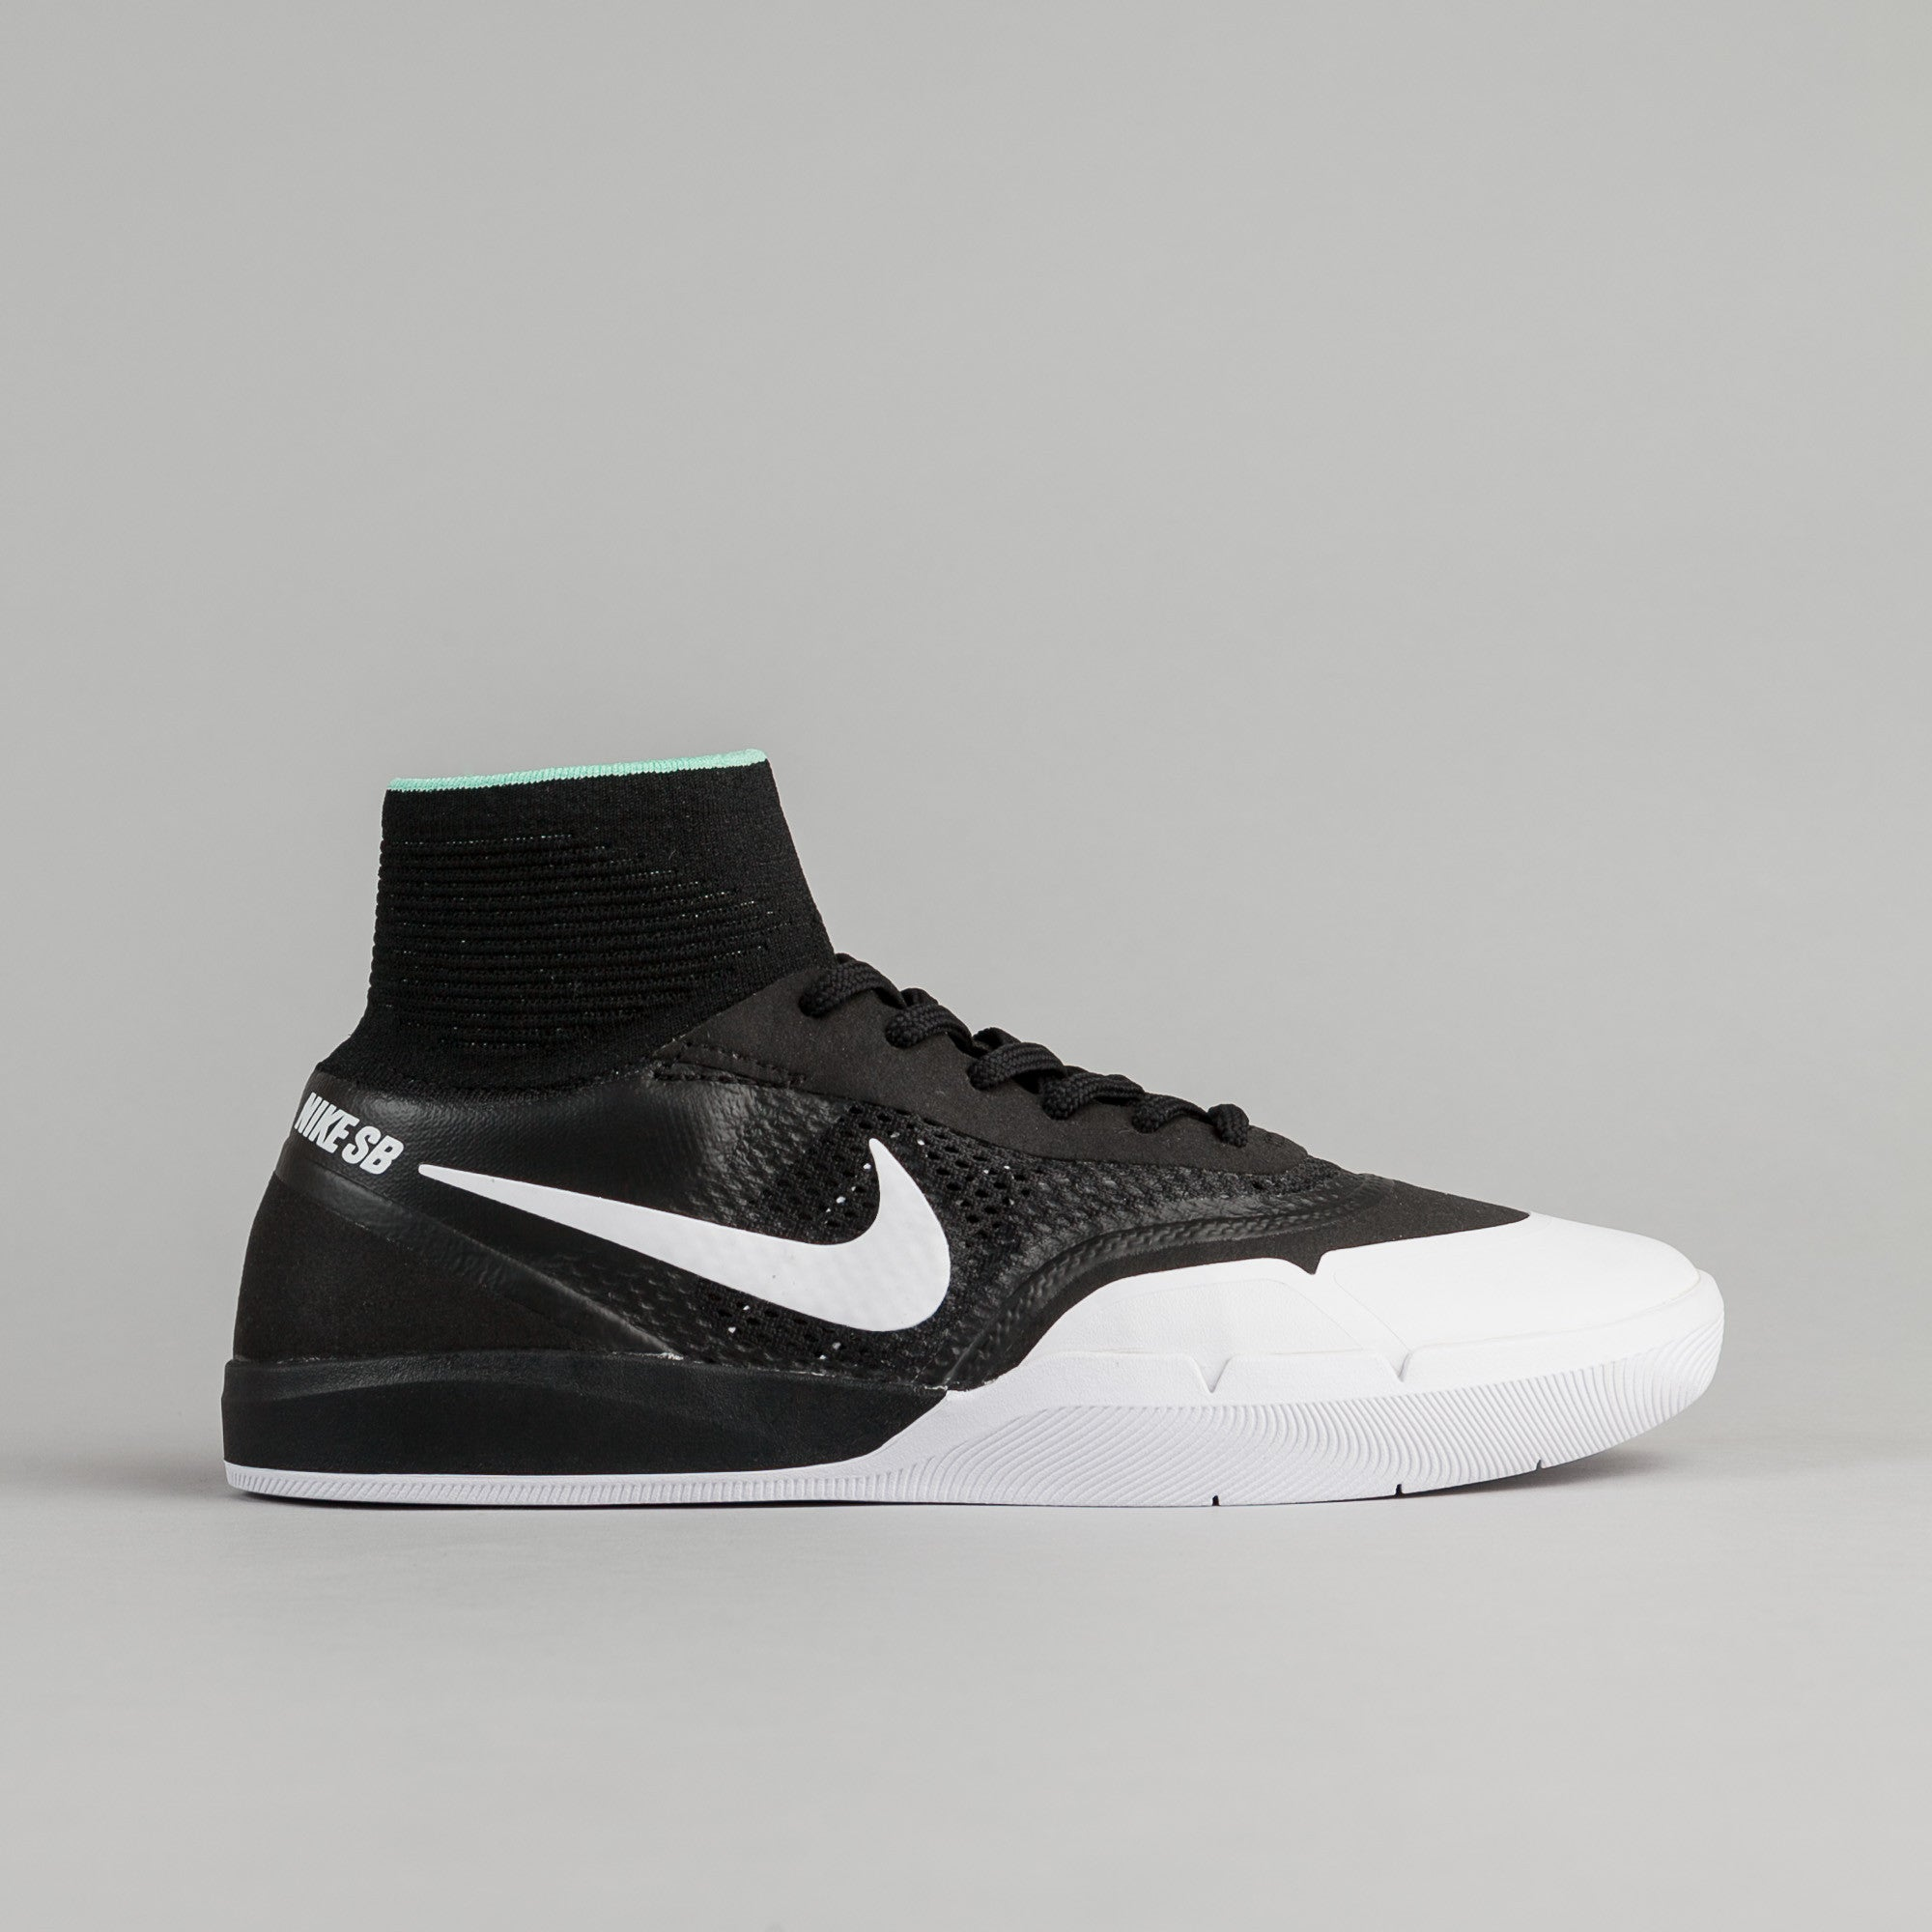 represa arpón Inferior  Nike SB Koston 3 Hyperfeel XT Shoes - Black / White | Flatspot